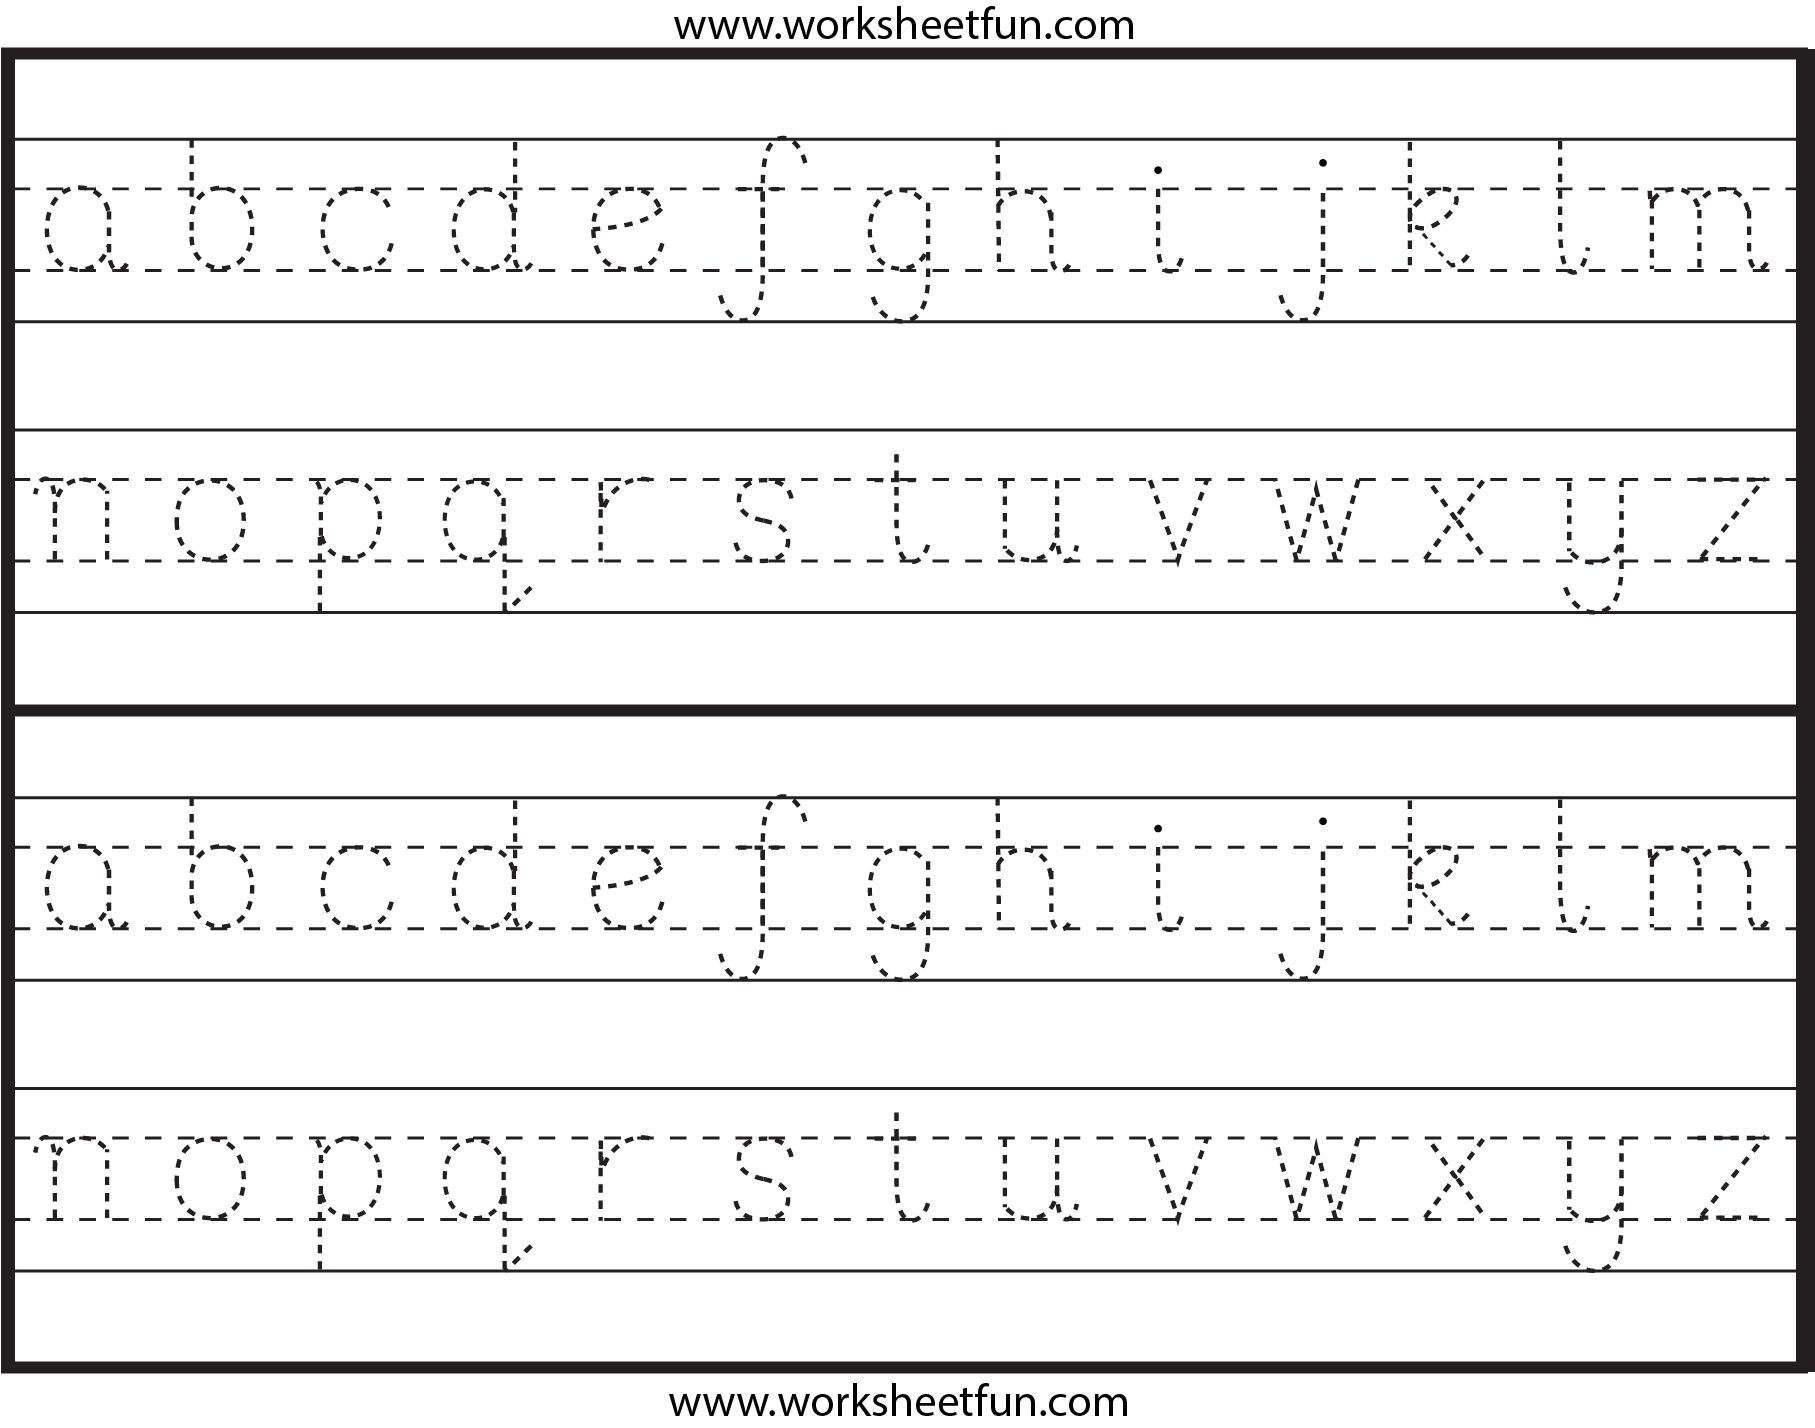 Lowercase Letter Tracing 1 Worksheet Free Printable Worksheets Worksheetfun